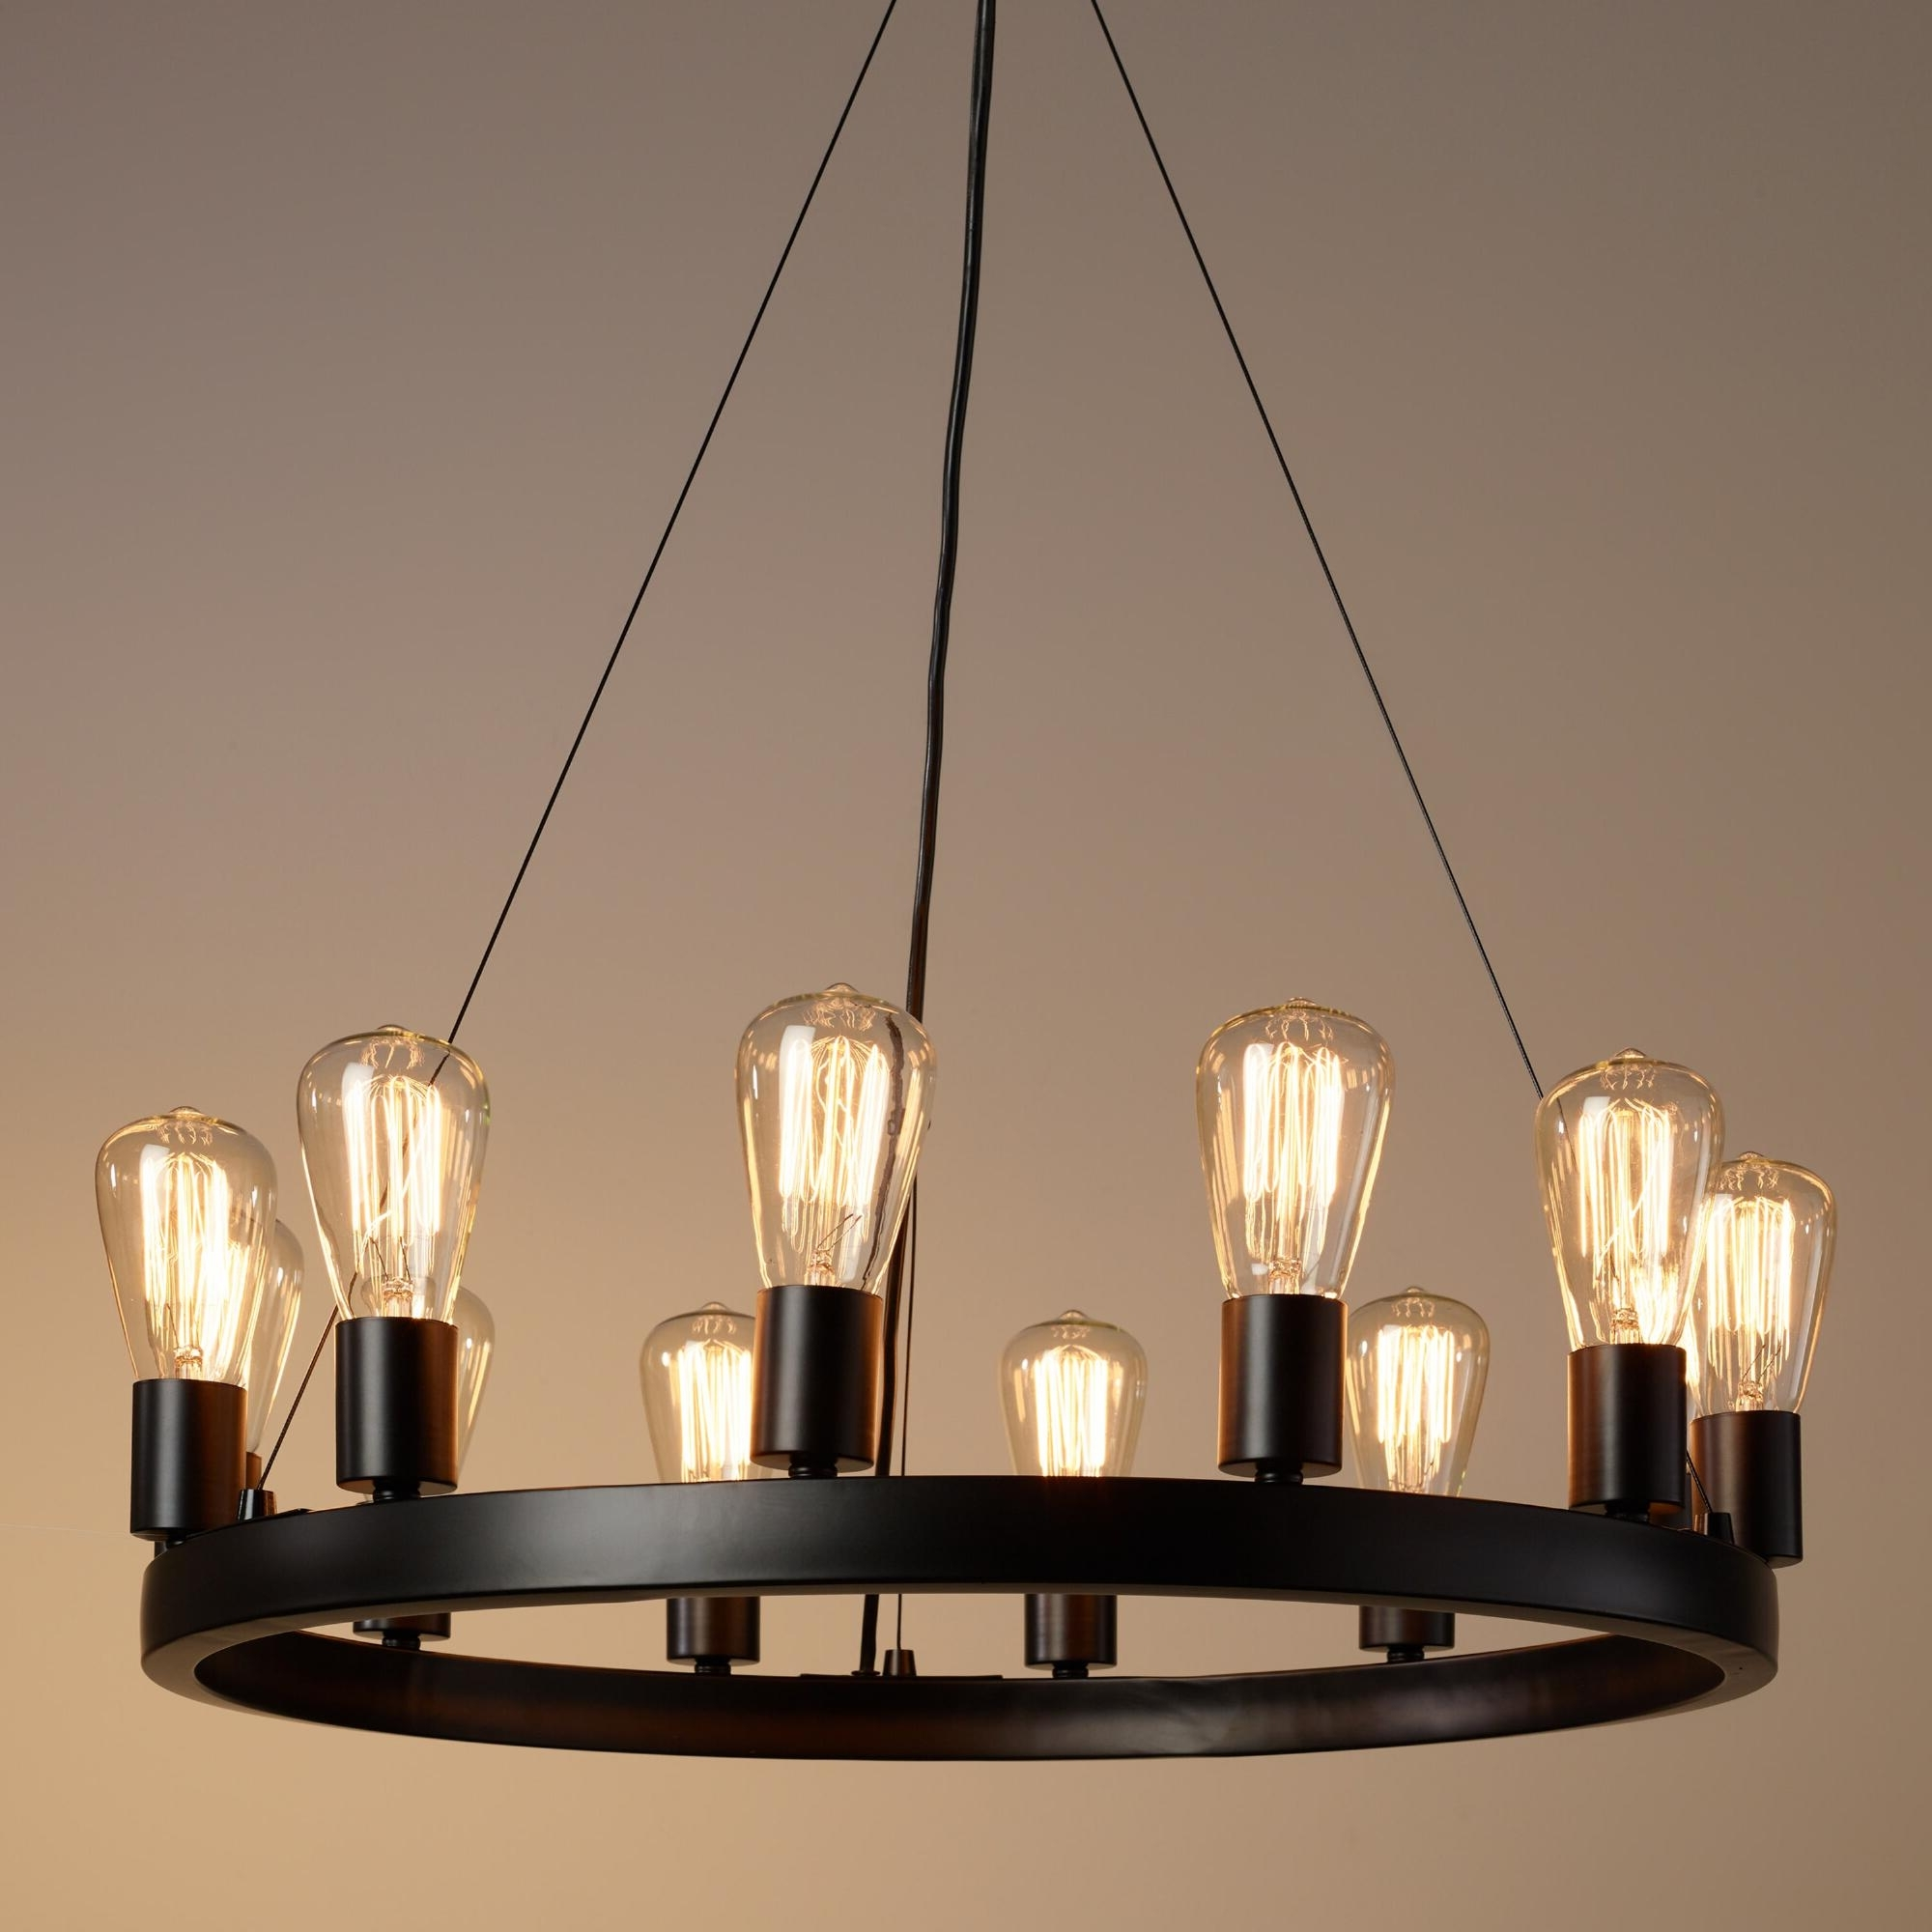 Popular Light : Amazing Round Light Edison Bulb Chandelier With Additional Intended For Small Rustic Chandeliers (View 9 of 15)